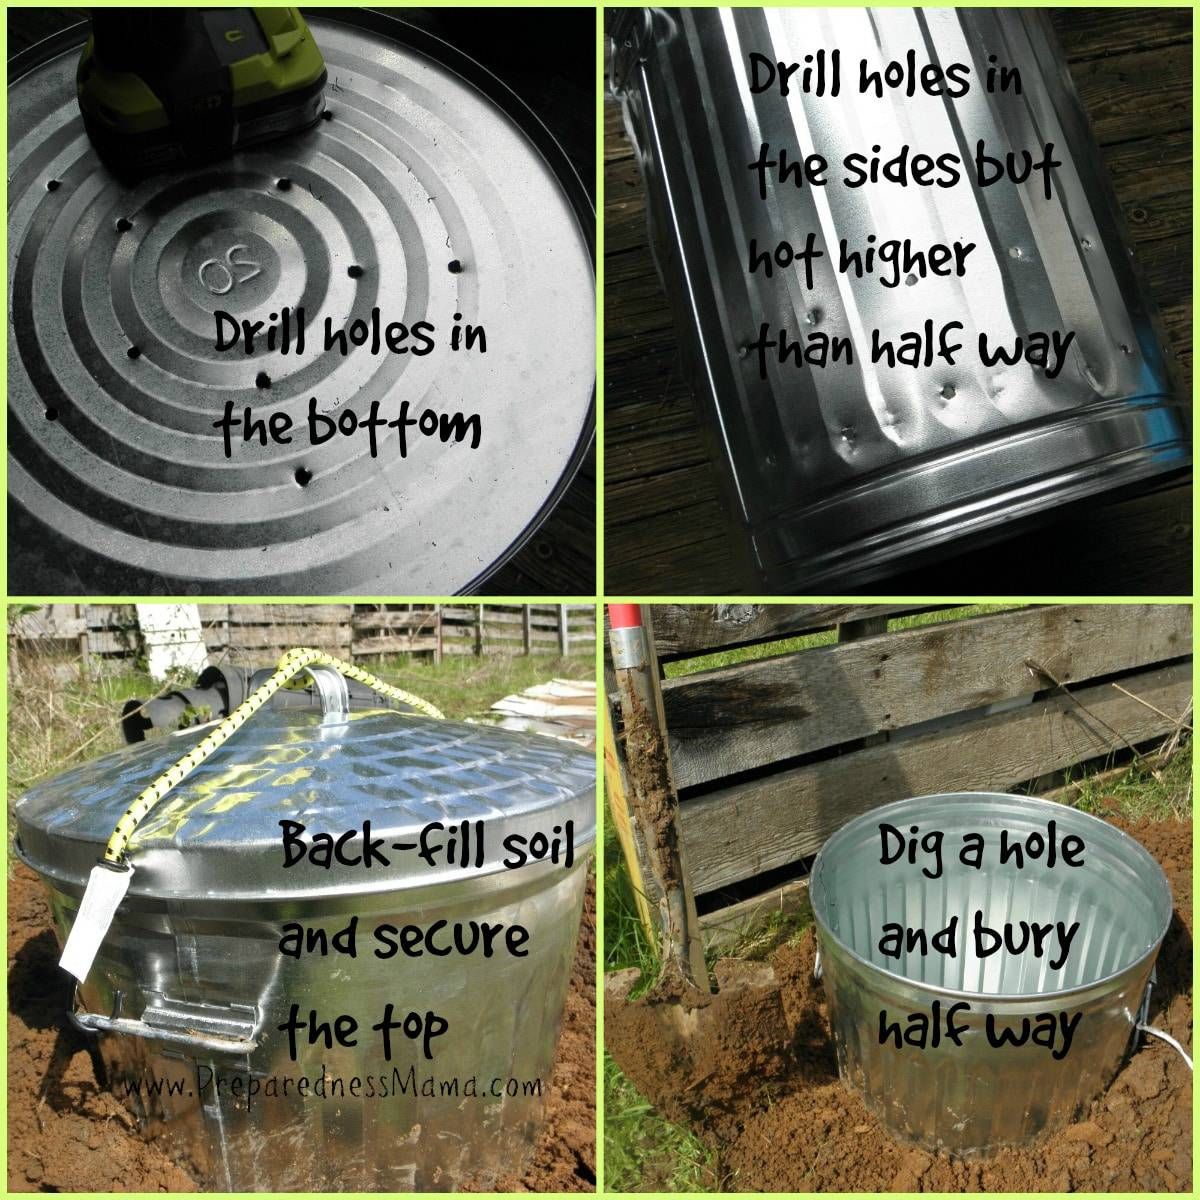 Directions For Making A Kitchen Scrap Composter For Under $20 |  PreparednessMama